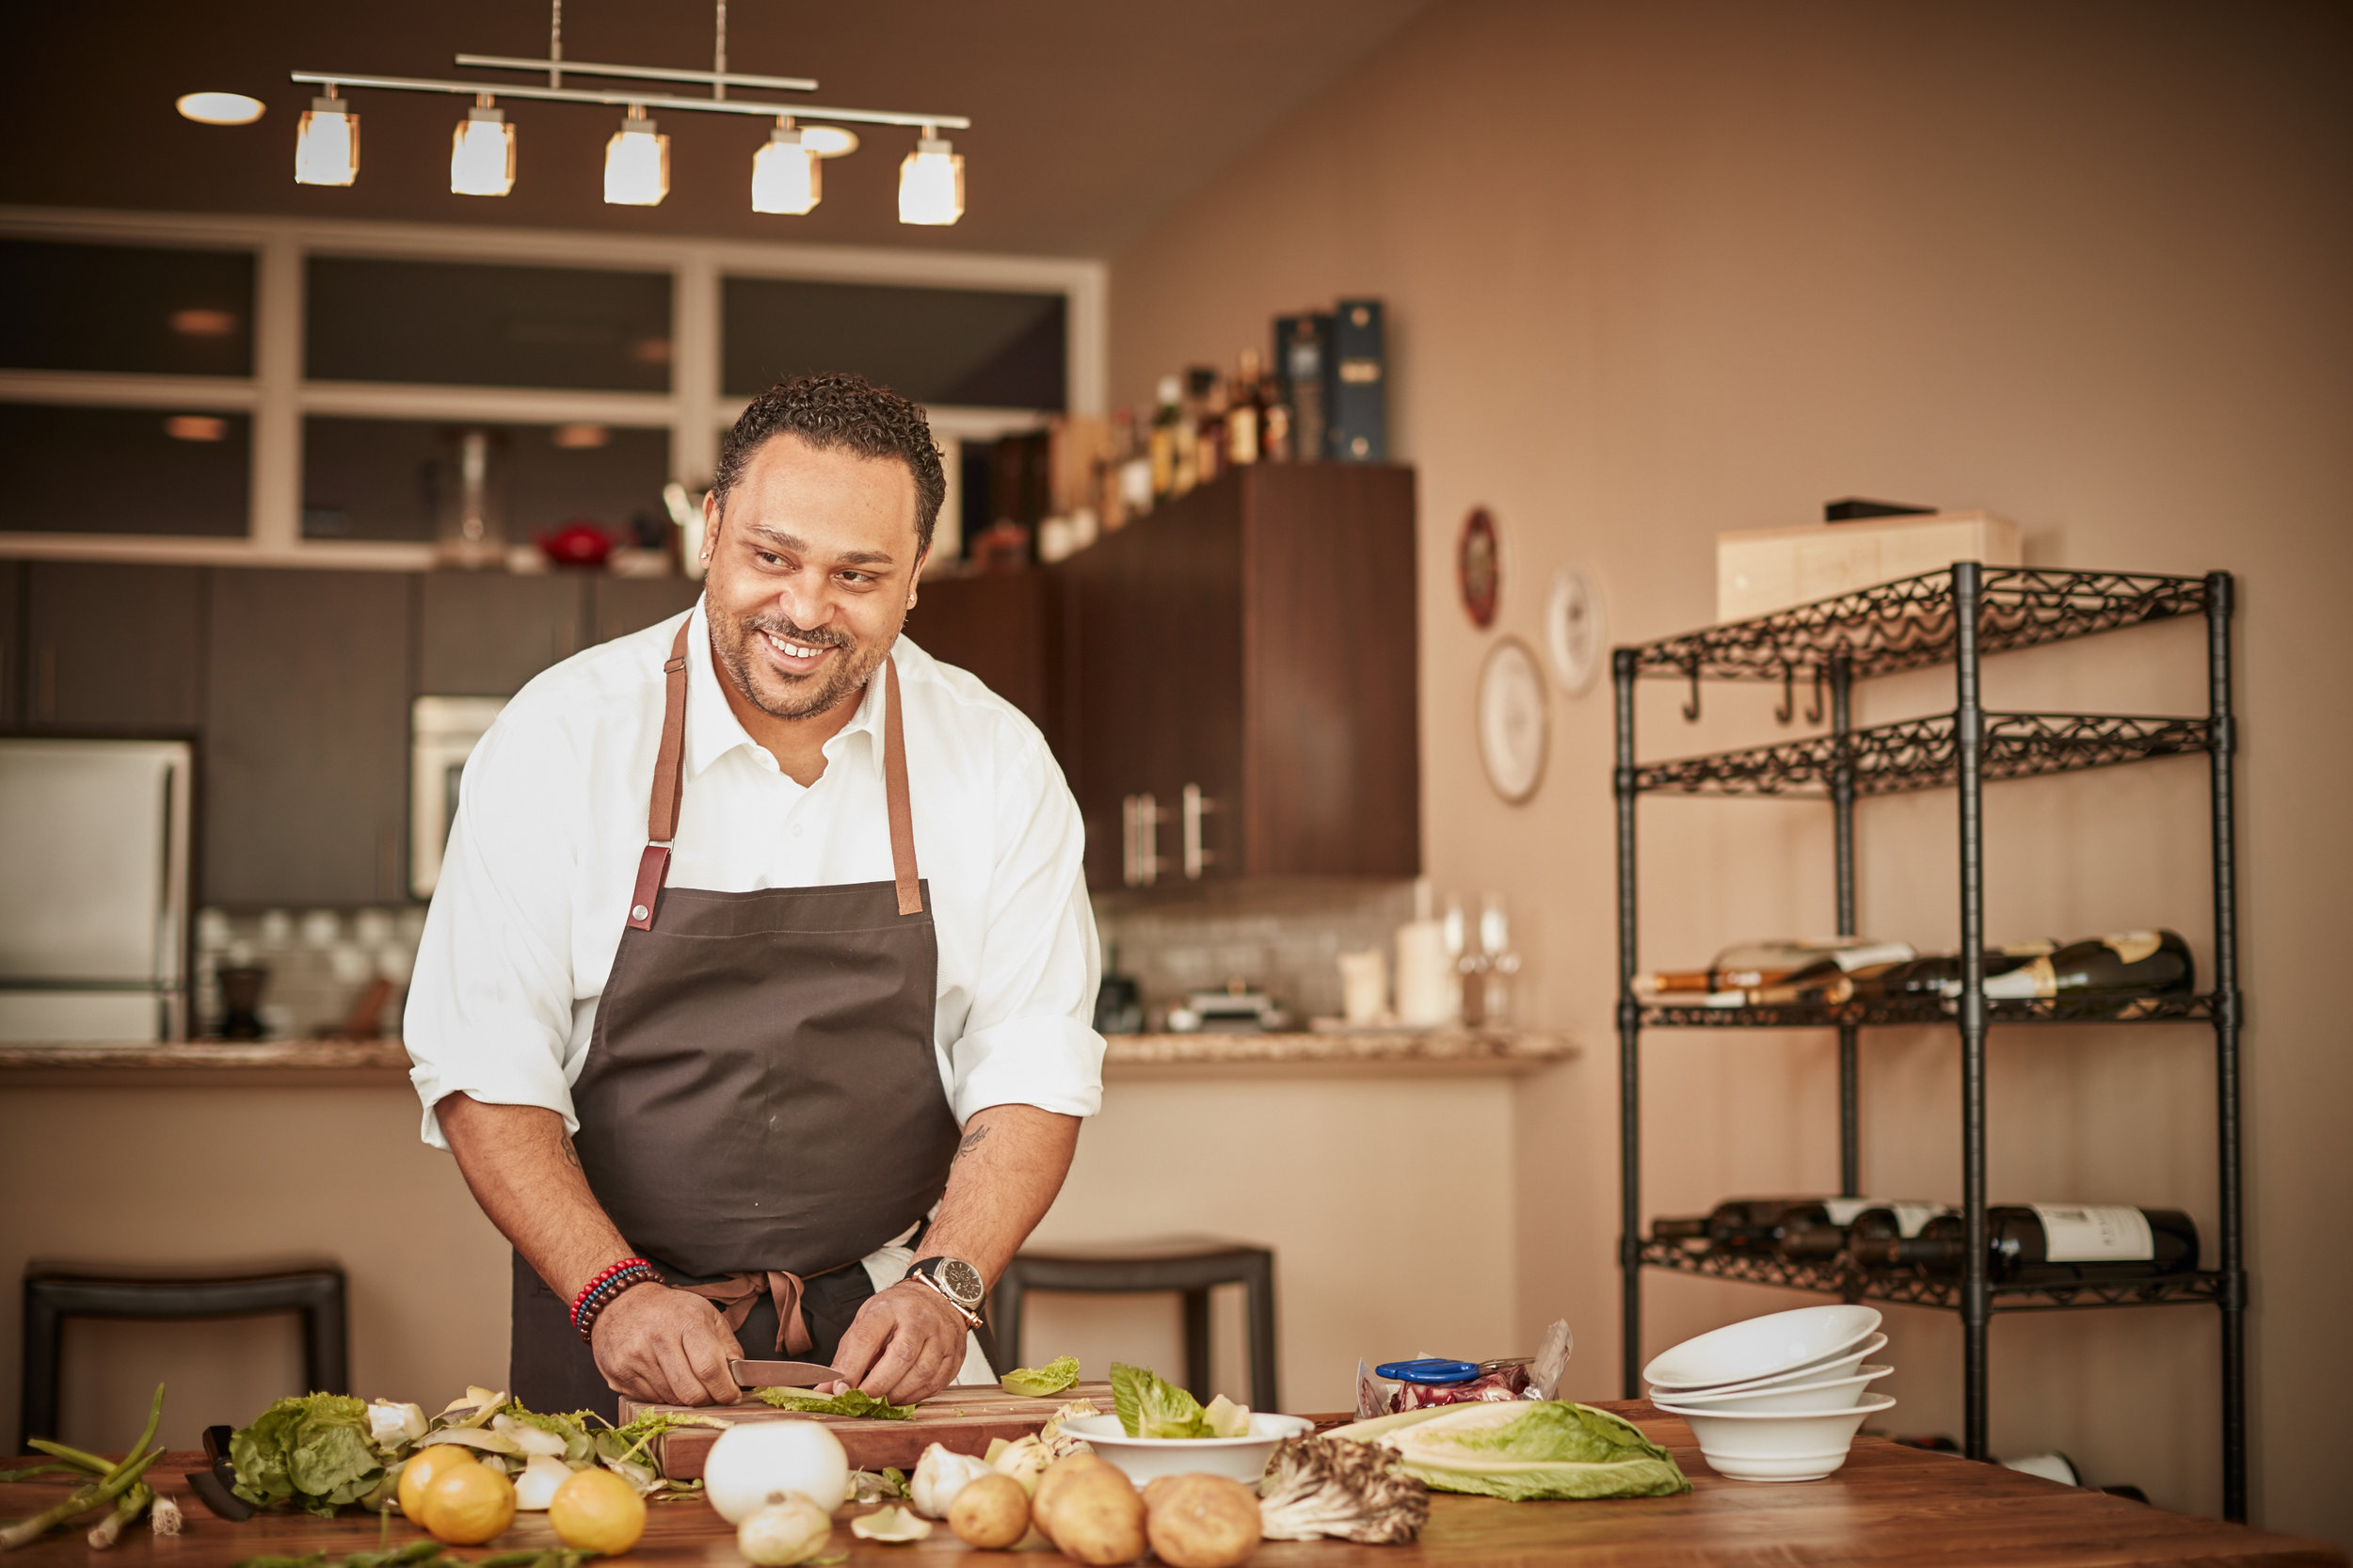 Top Chef Season 7 Winner. MasterChef Judge. Father. Consultant. Restaurateur. Principal of Sbraga Consulting. Founder of Sonny & Sons. Making it happen since 1979.